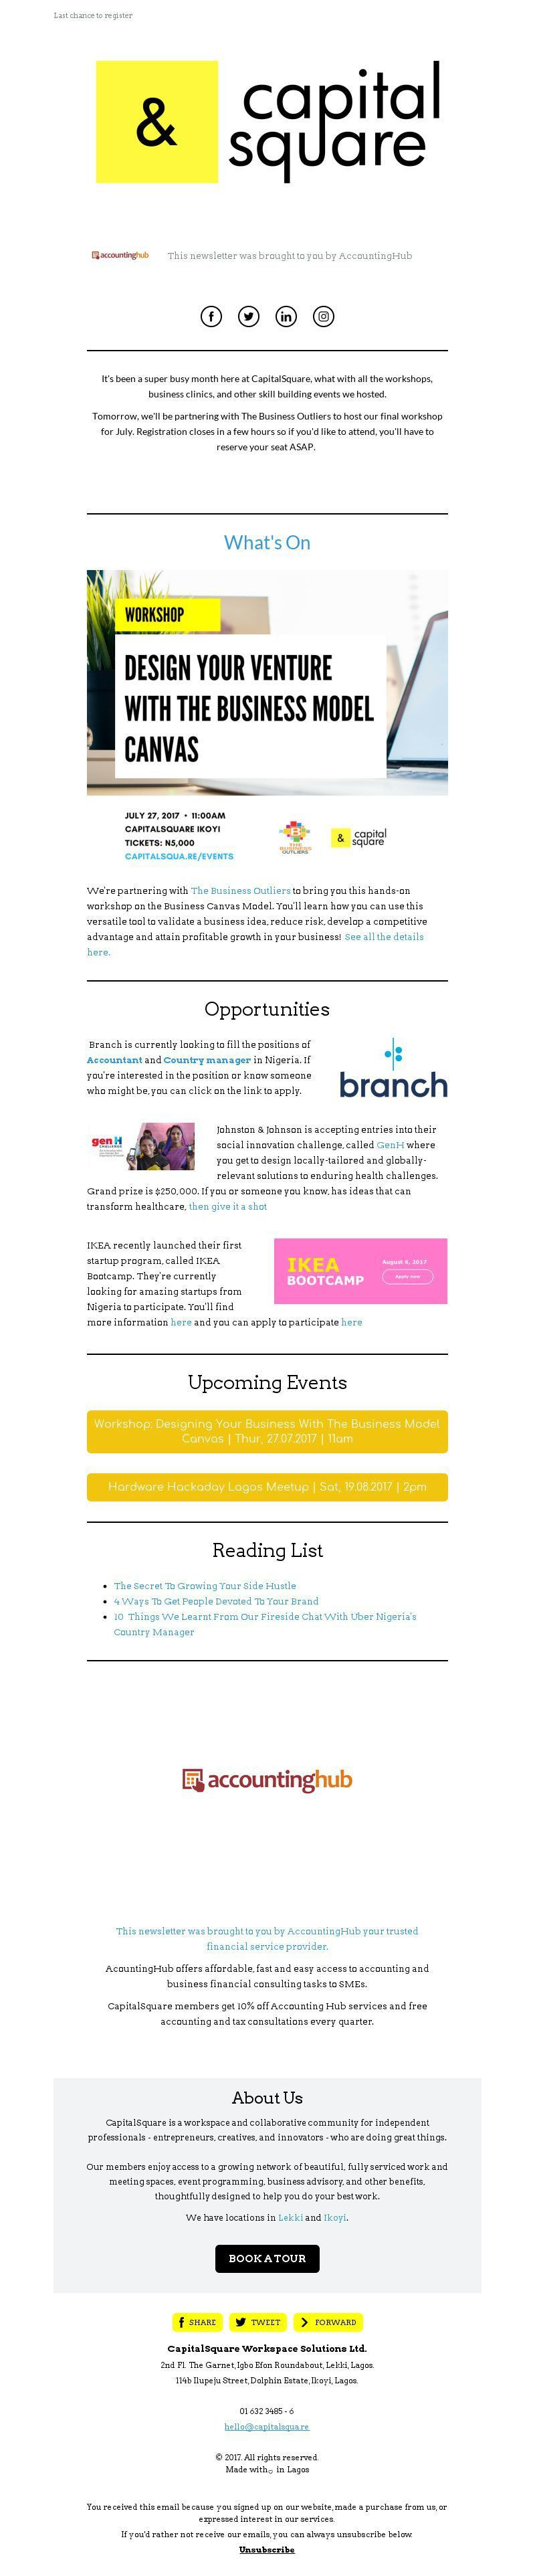 Email Newsletter Design Gallery and Examples | MailerLite